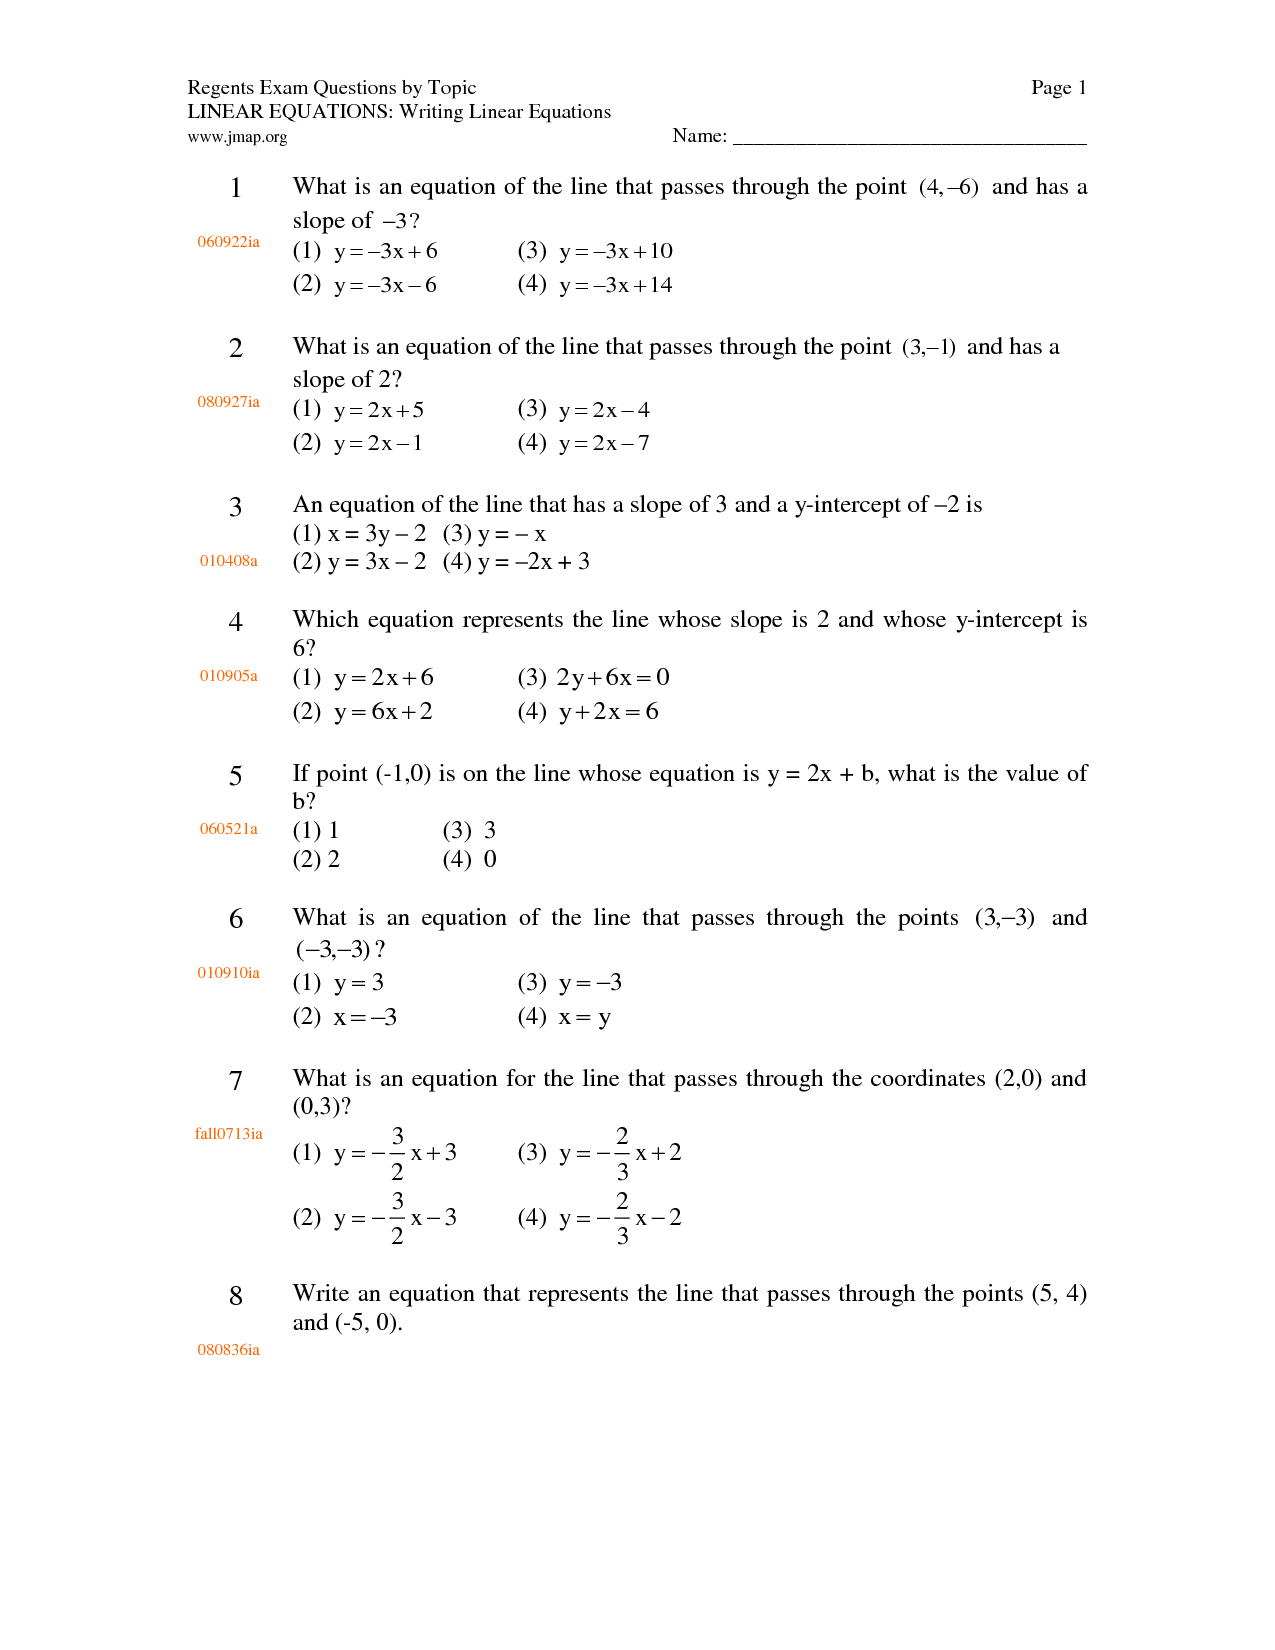 Worksheet Writing Linear Equations Worksheet Grass Fedjp